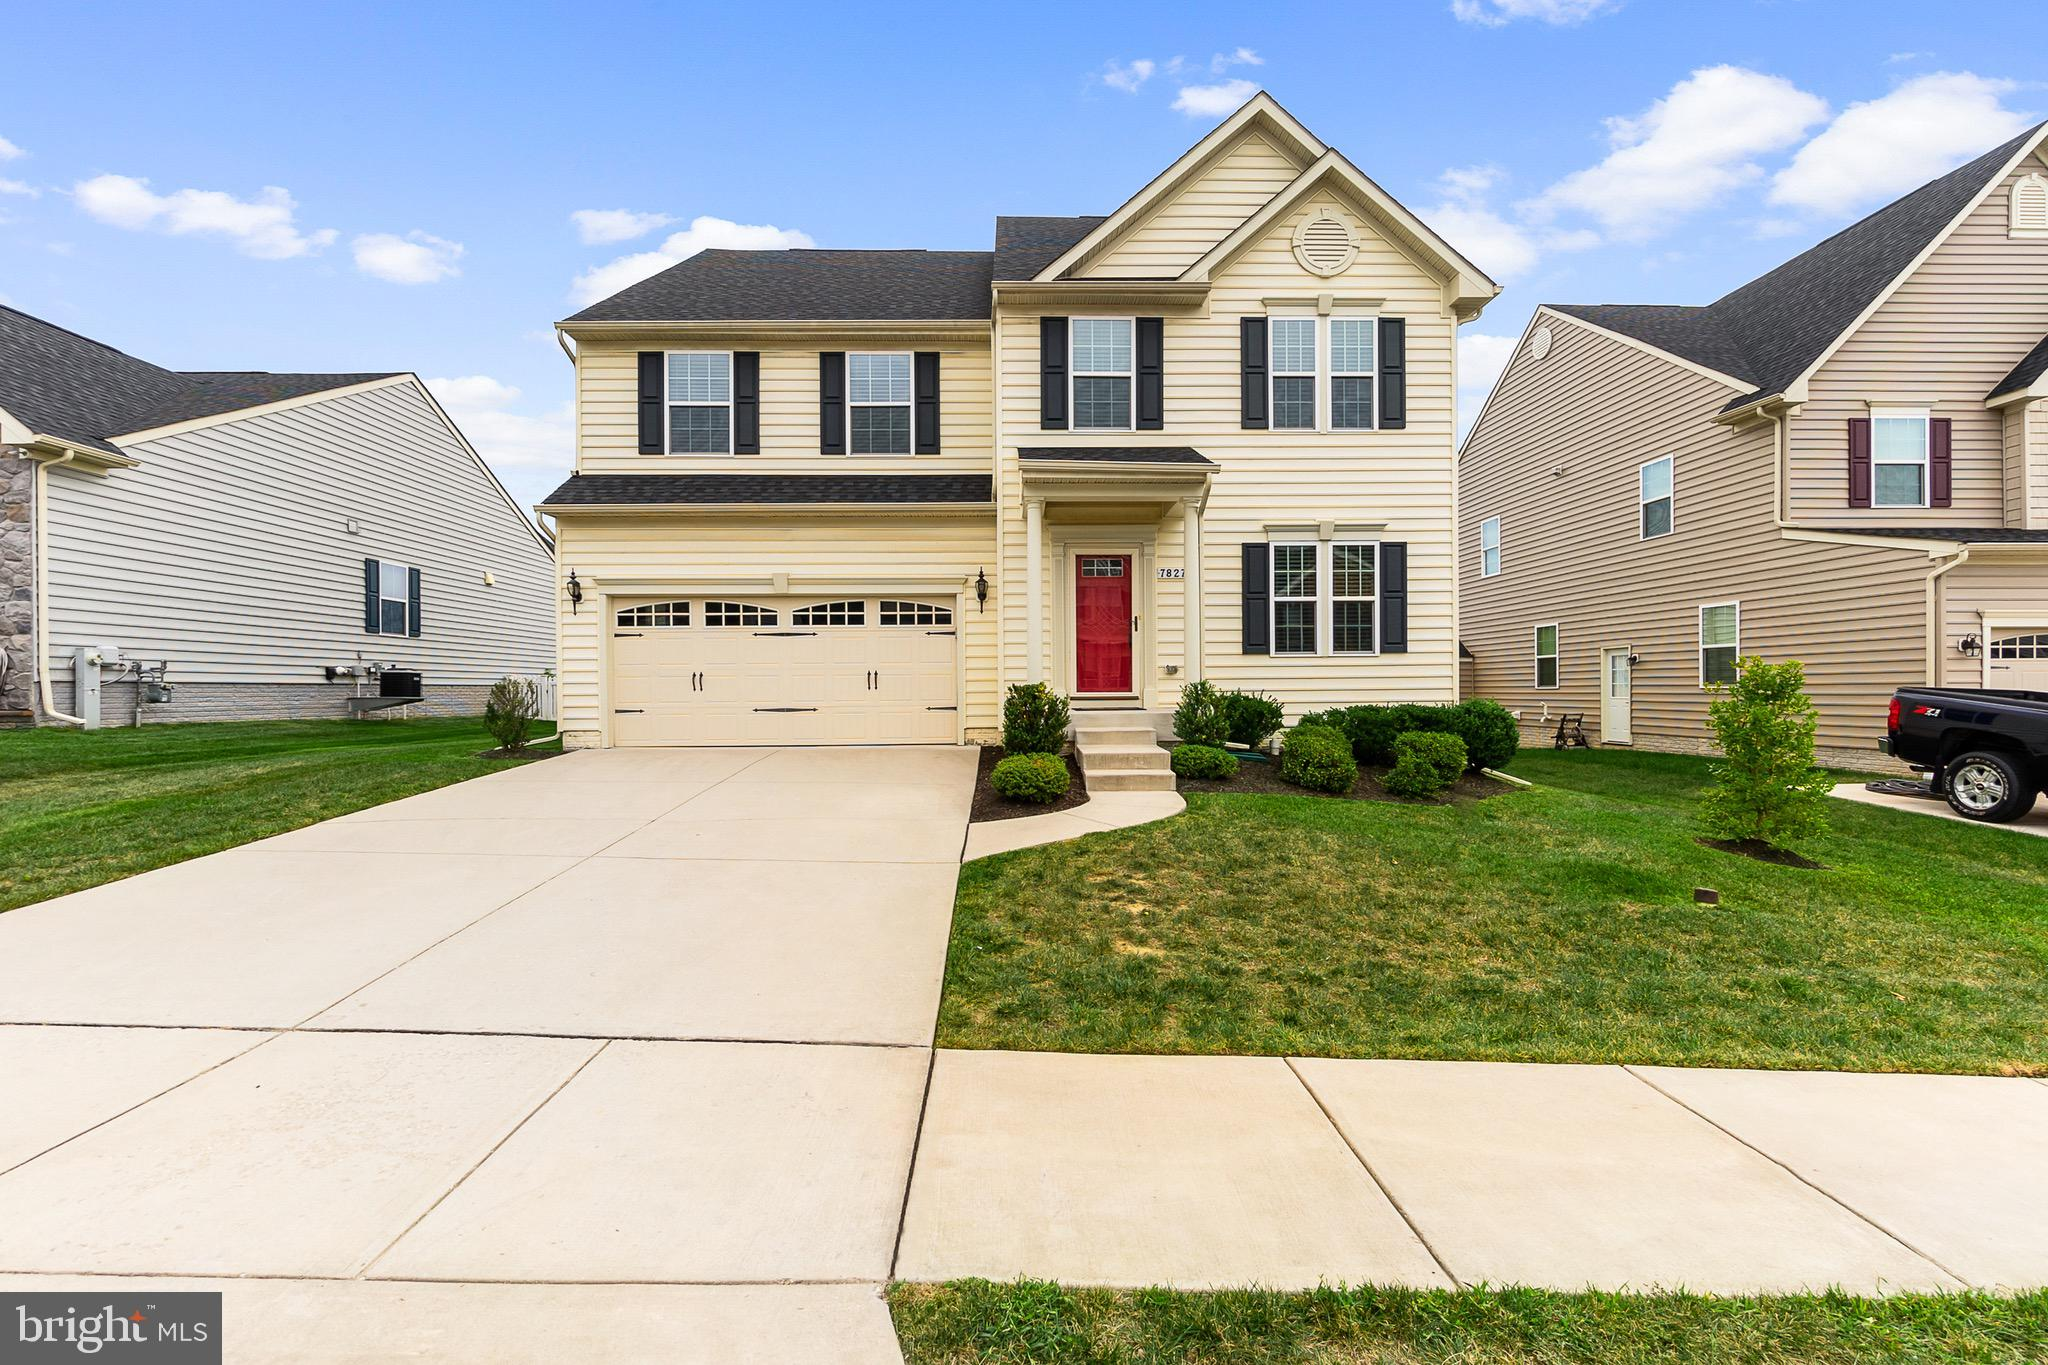 7827 SHADOW KNOLL COURT, BALTIMORE, MD 21236